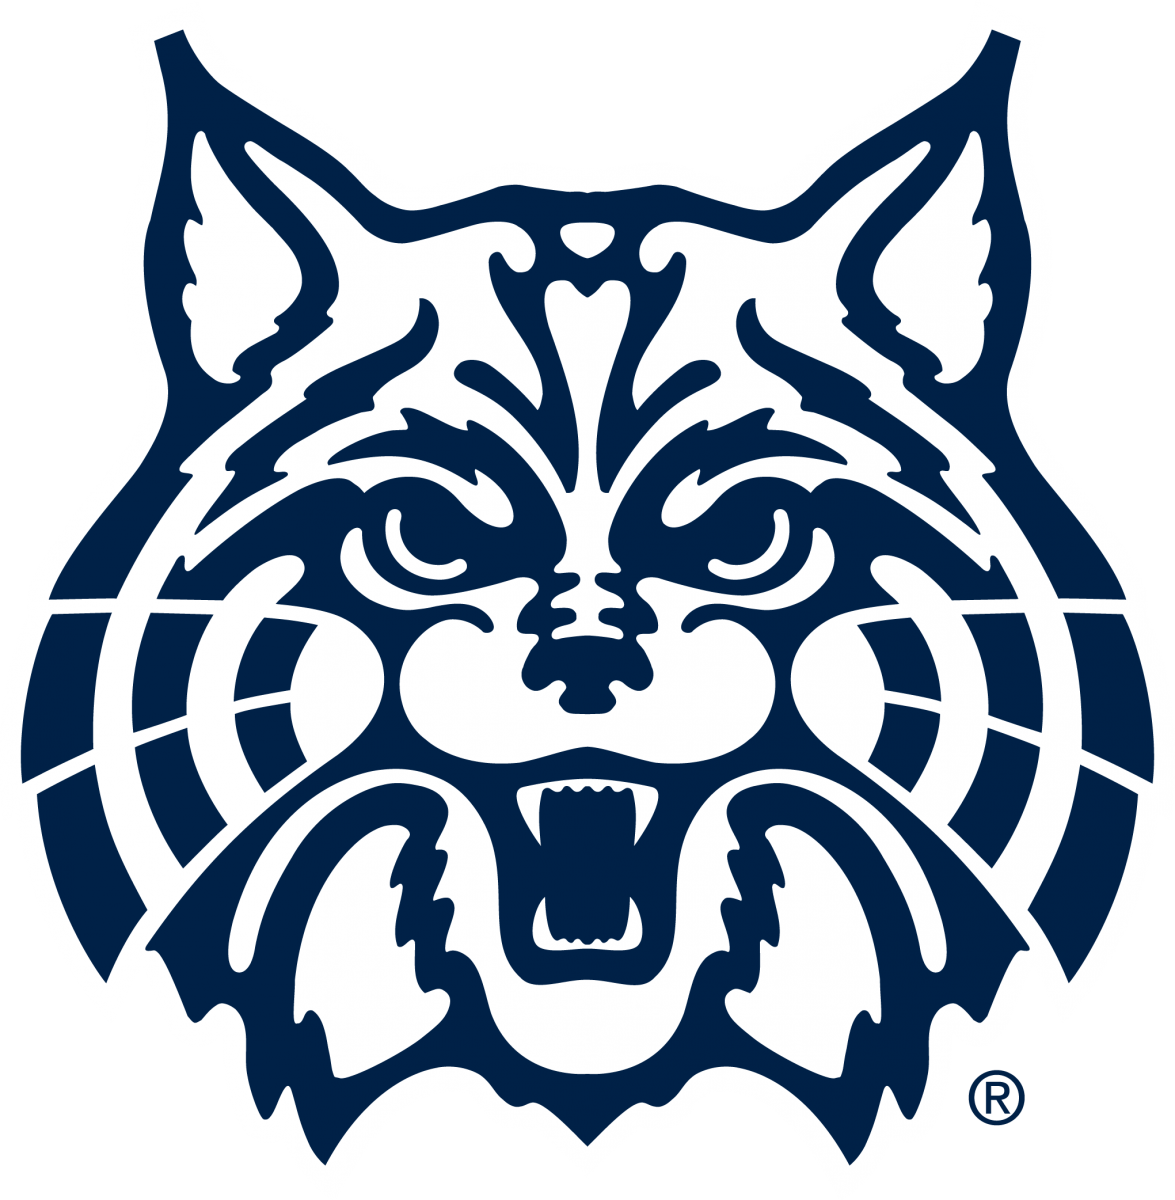 Wildcat clipart file, Wildcat file Transparent FREE for.